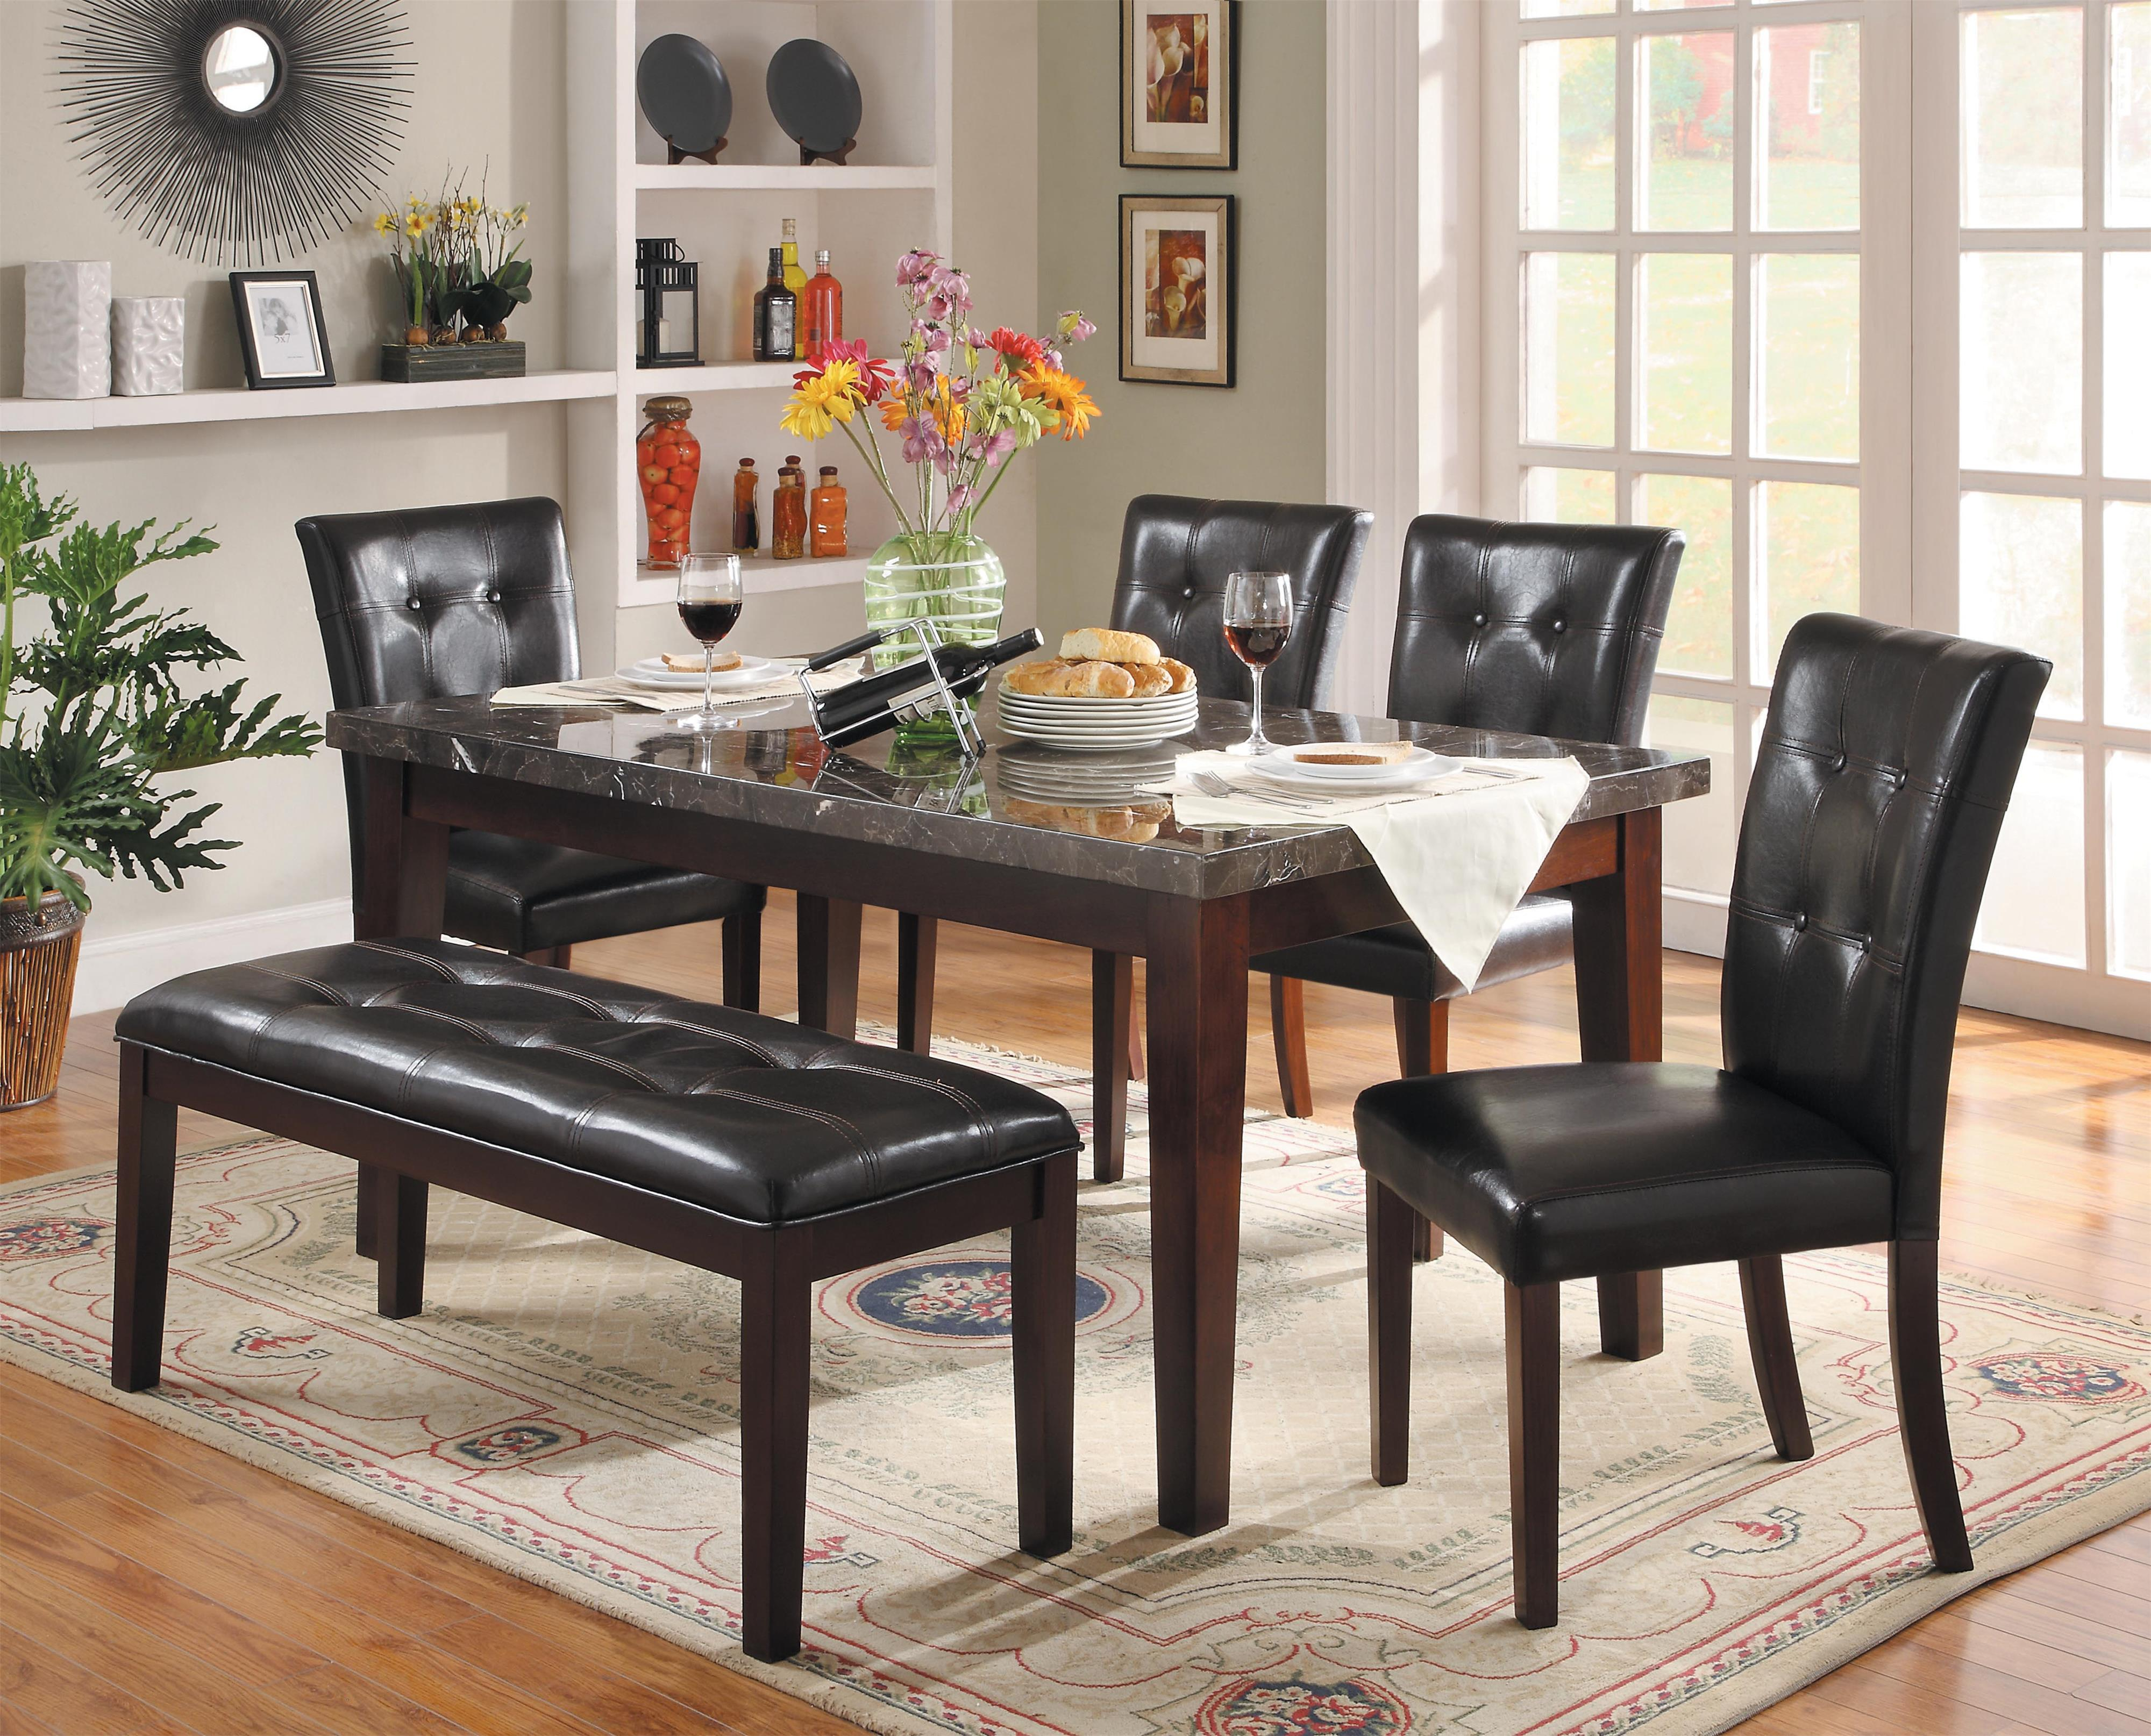 Homelegance Decatur 6 Piece Dining Set with Bench - Item Number: 2456-64+4xS+13